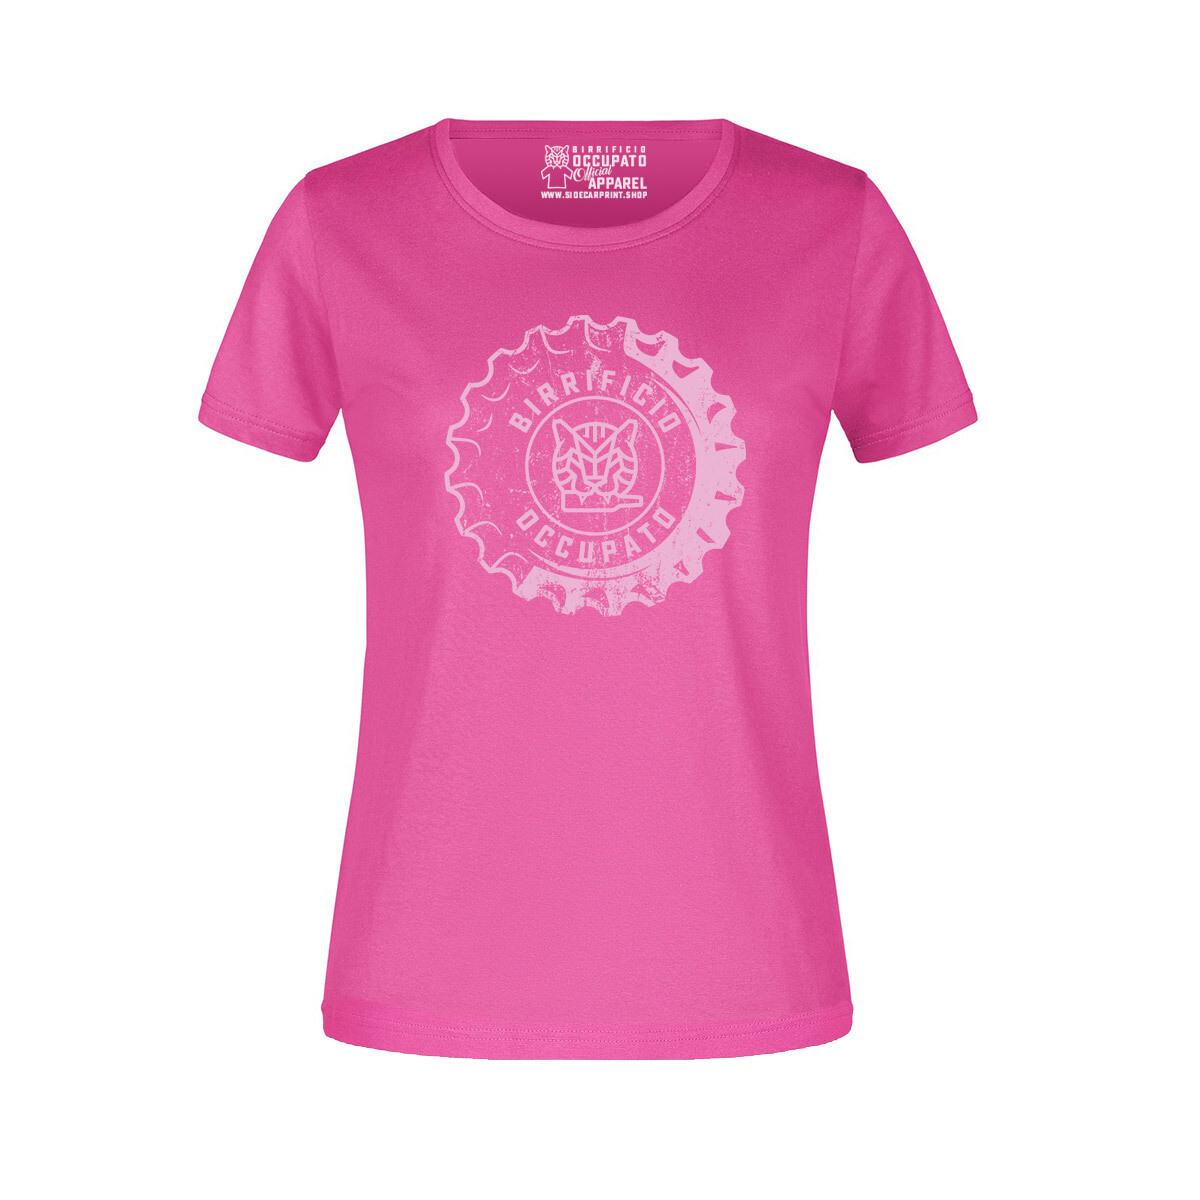 """T-shirt Donna """"Tappone"""" Pink - Lim.Ed. Spring 2021"""